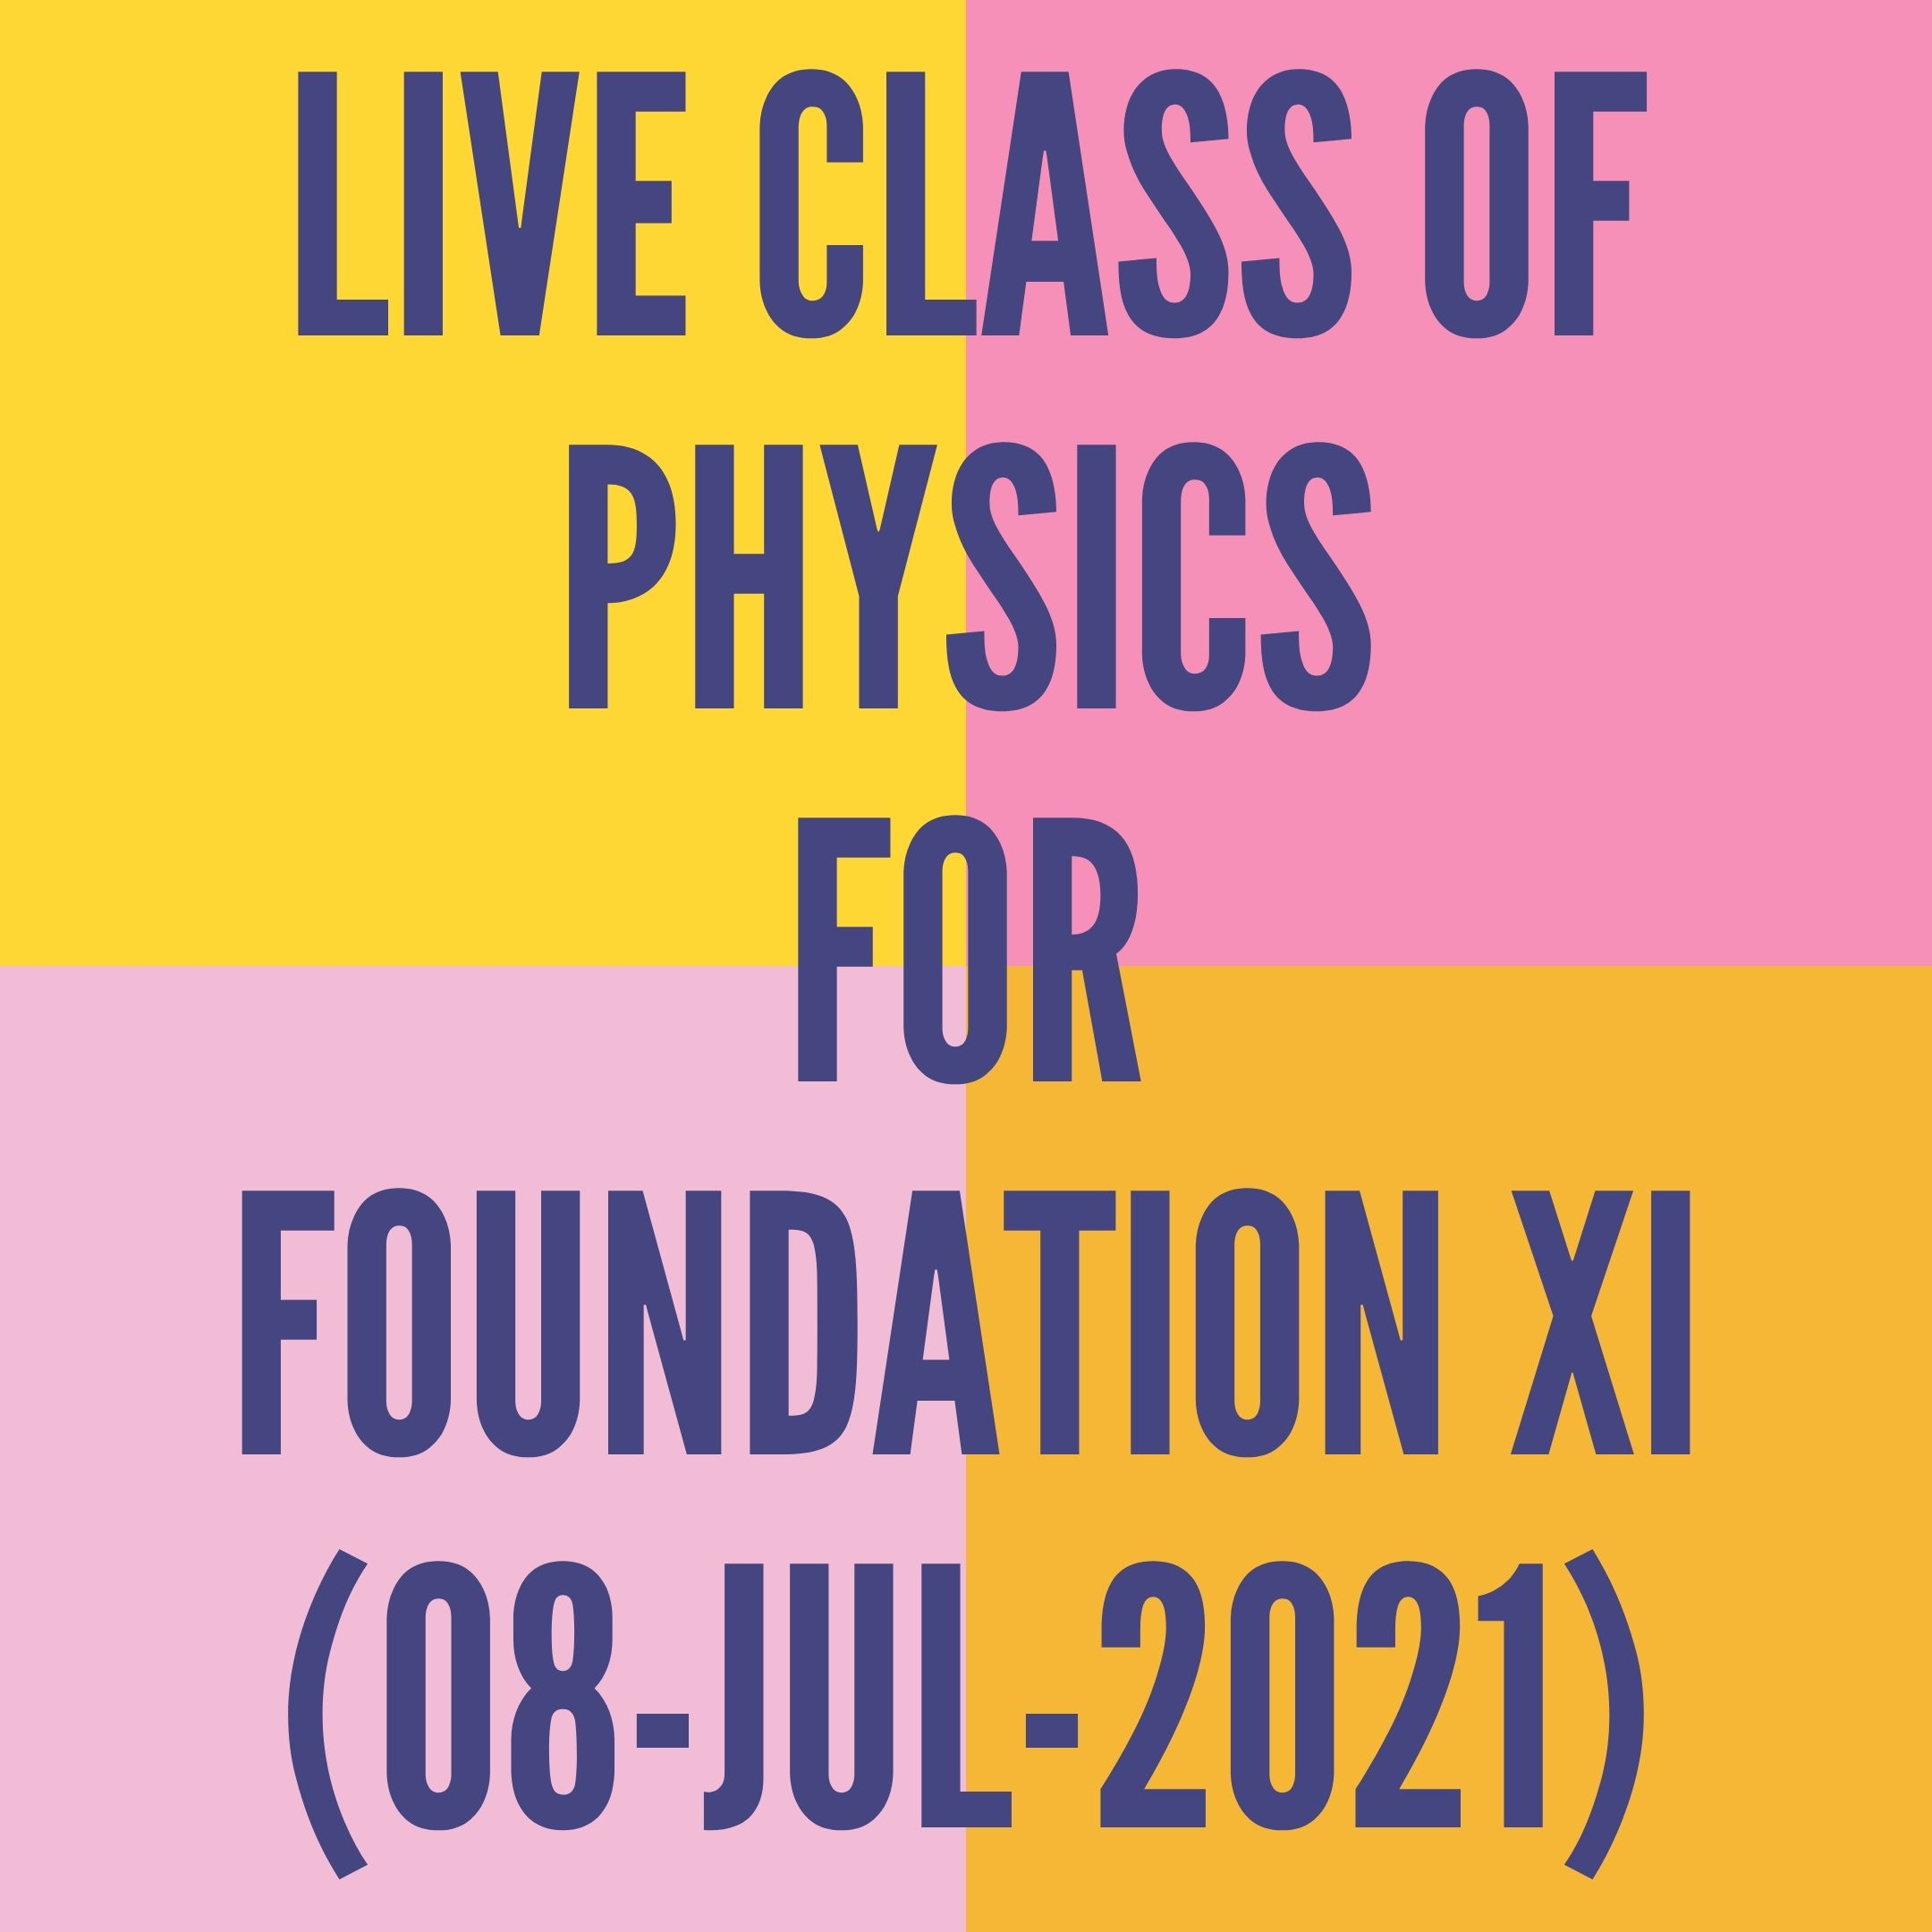 LIVE CLASS OF PHYSICS FOR FOUNDATION XI (08-JUL-2021) APPLIED MATH